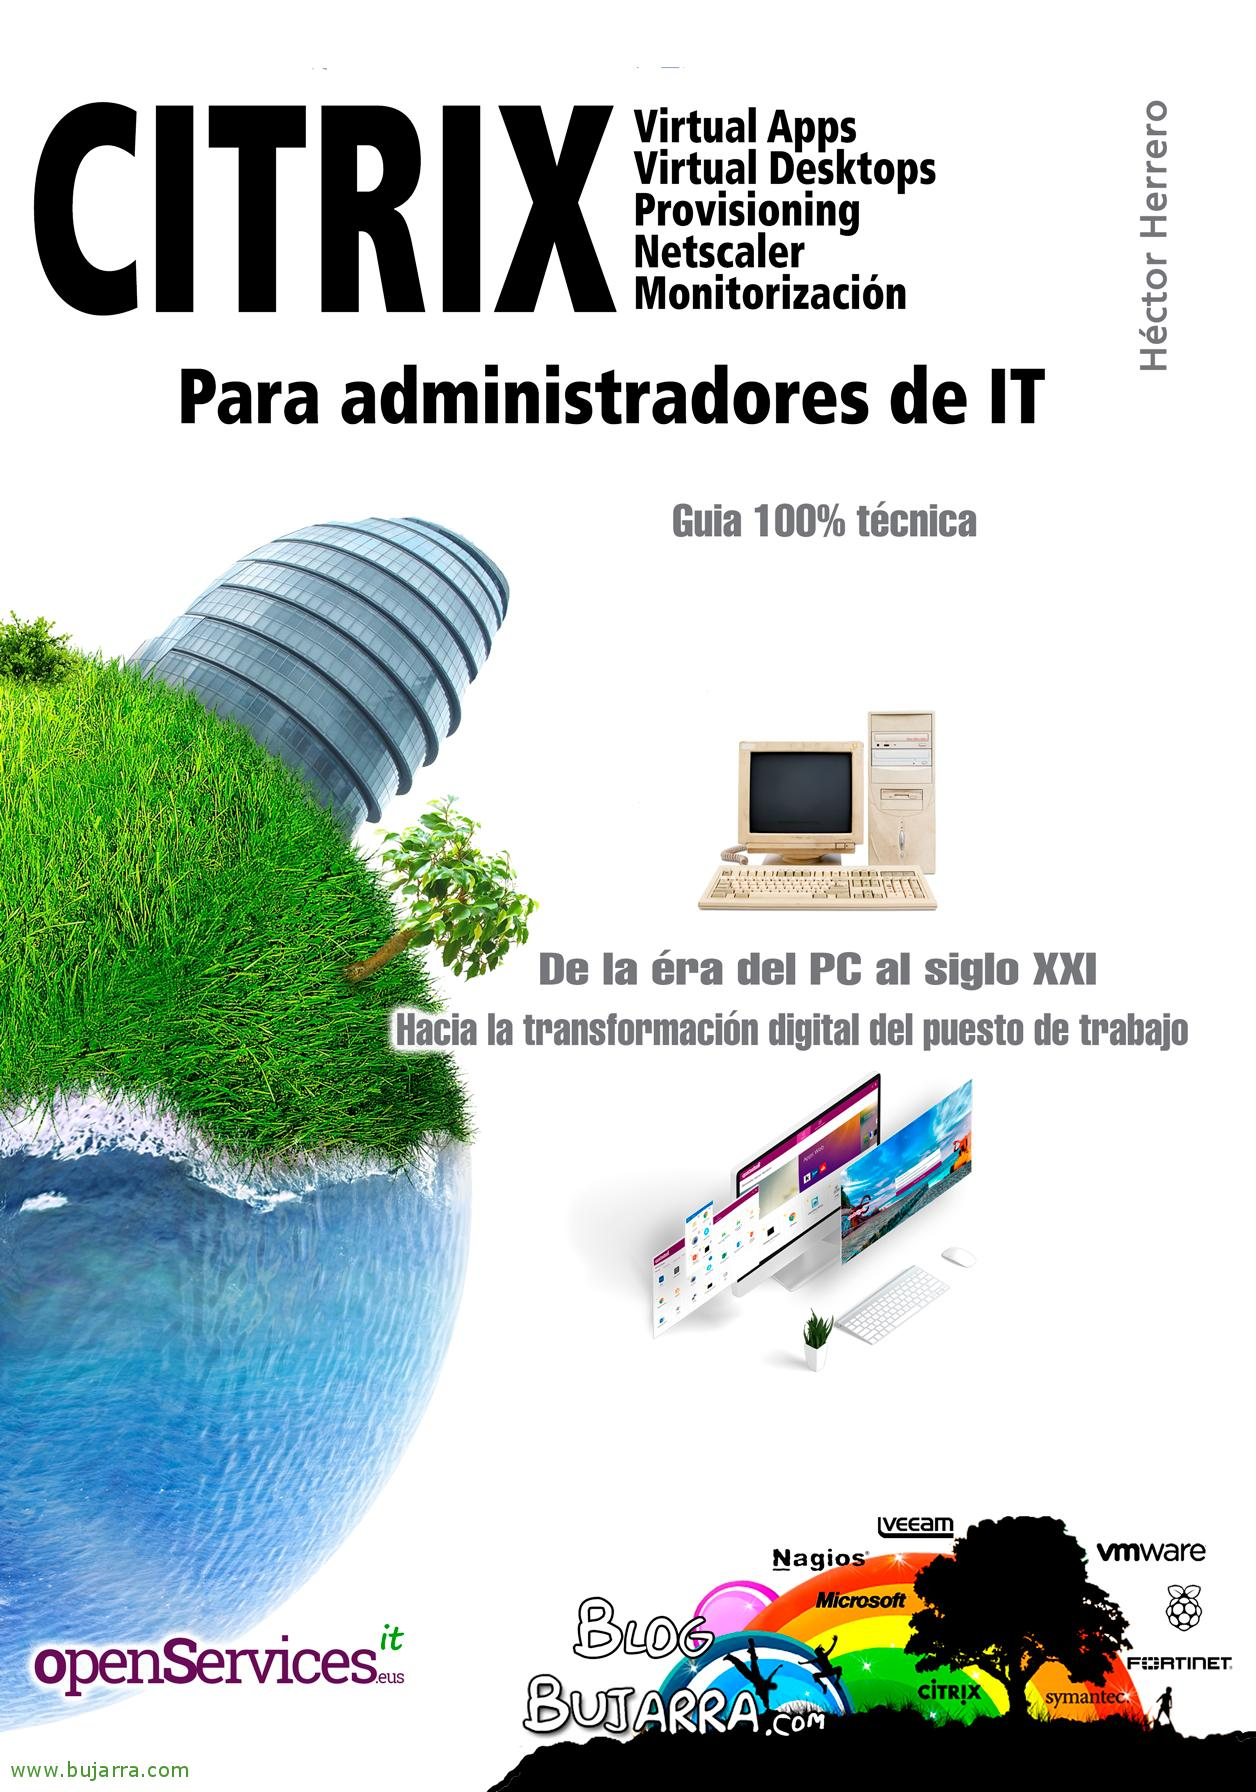 1ra-page-cover-book-Citrix